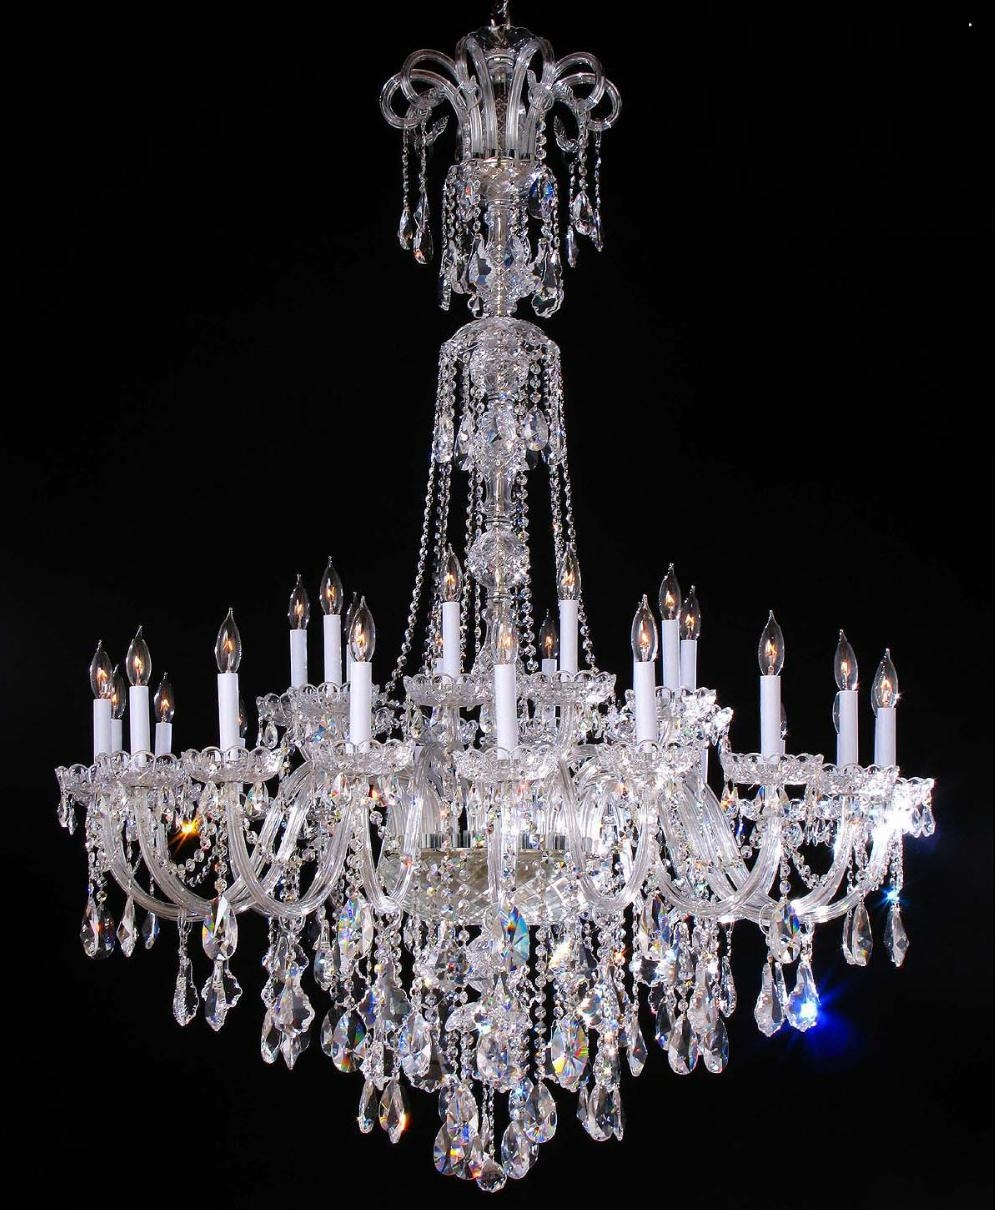 High Quality Wholesale Big Chandelier From China Big Chandelier Intended For Huge Crystal Chandelier (View 14 of 15)